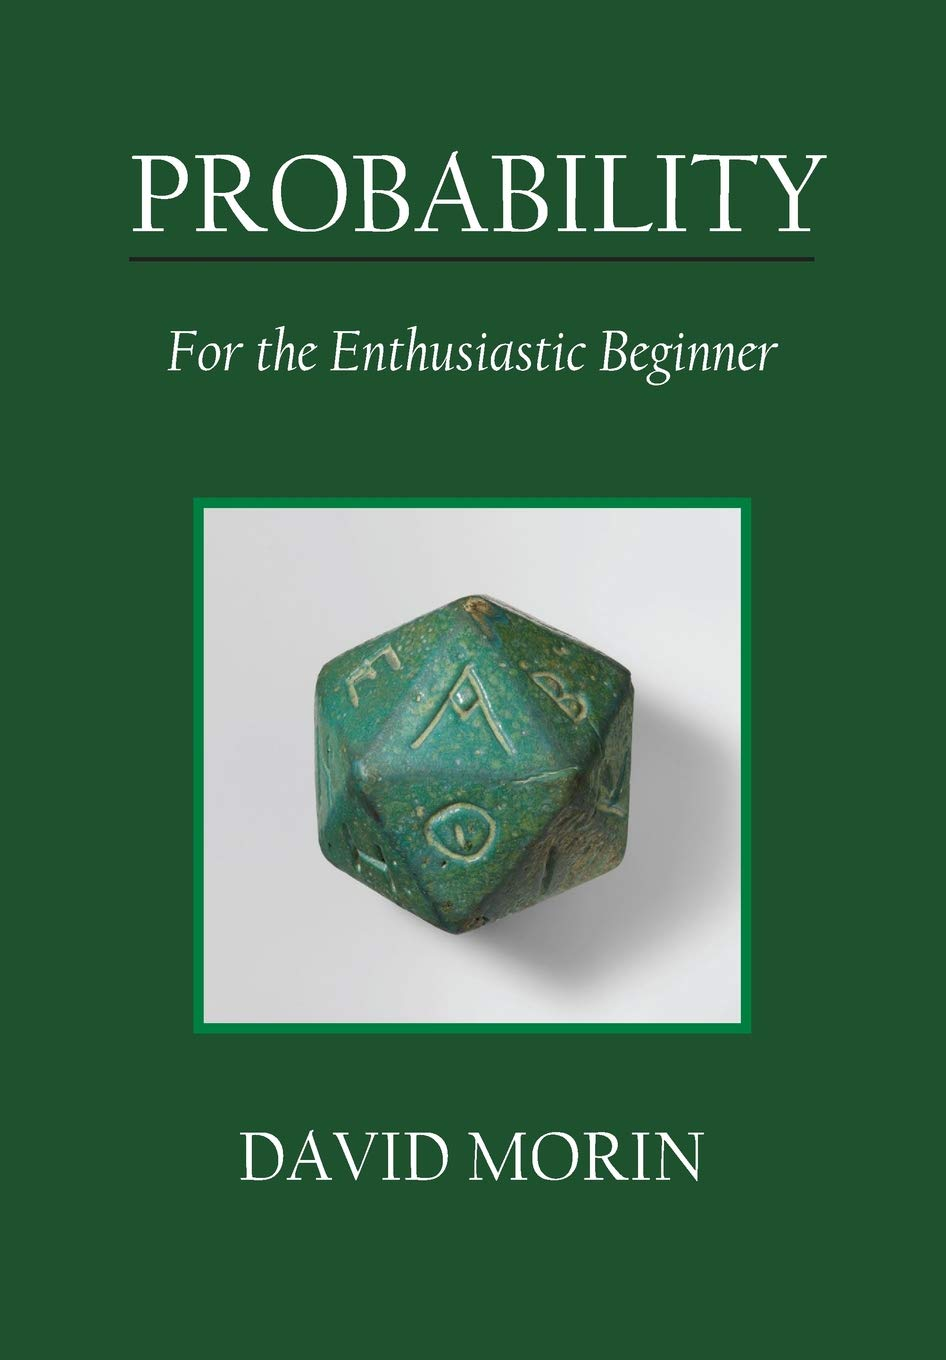 probability for the enthusiastic beginner pdf free download